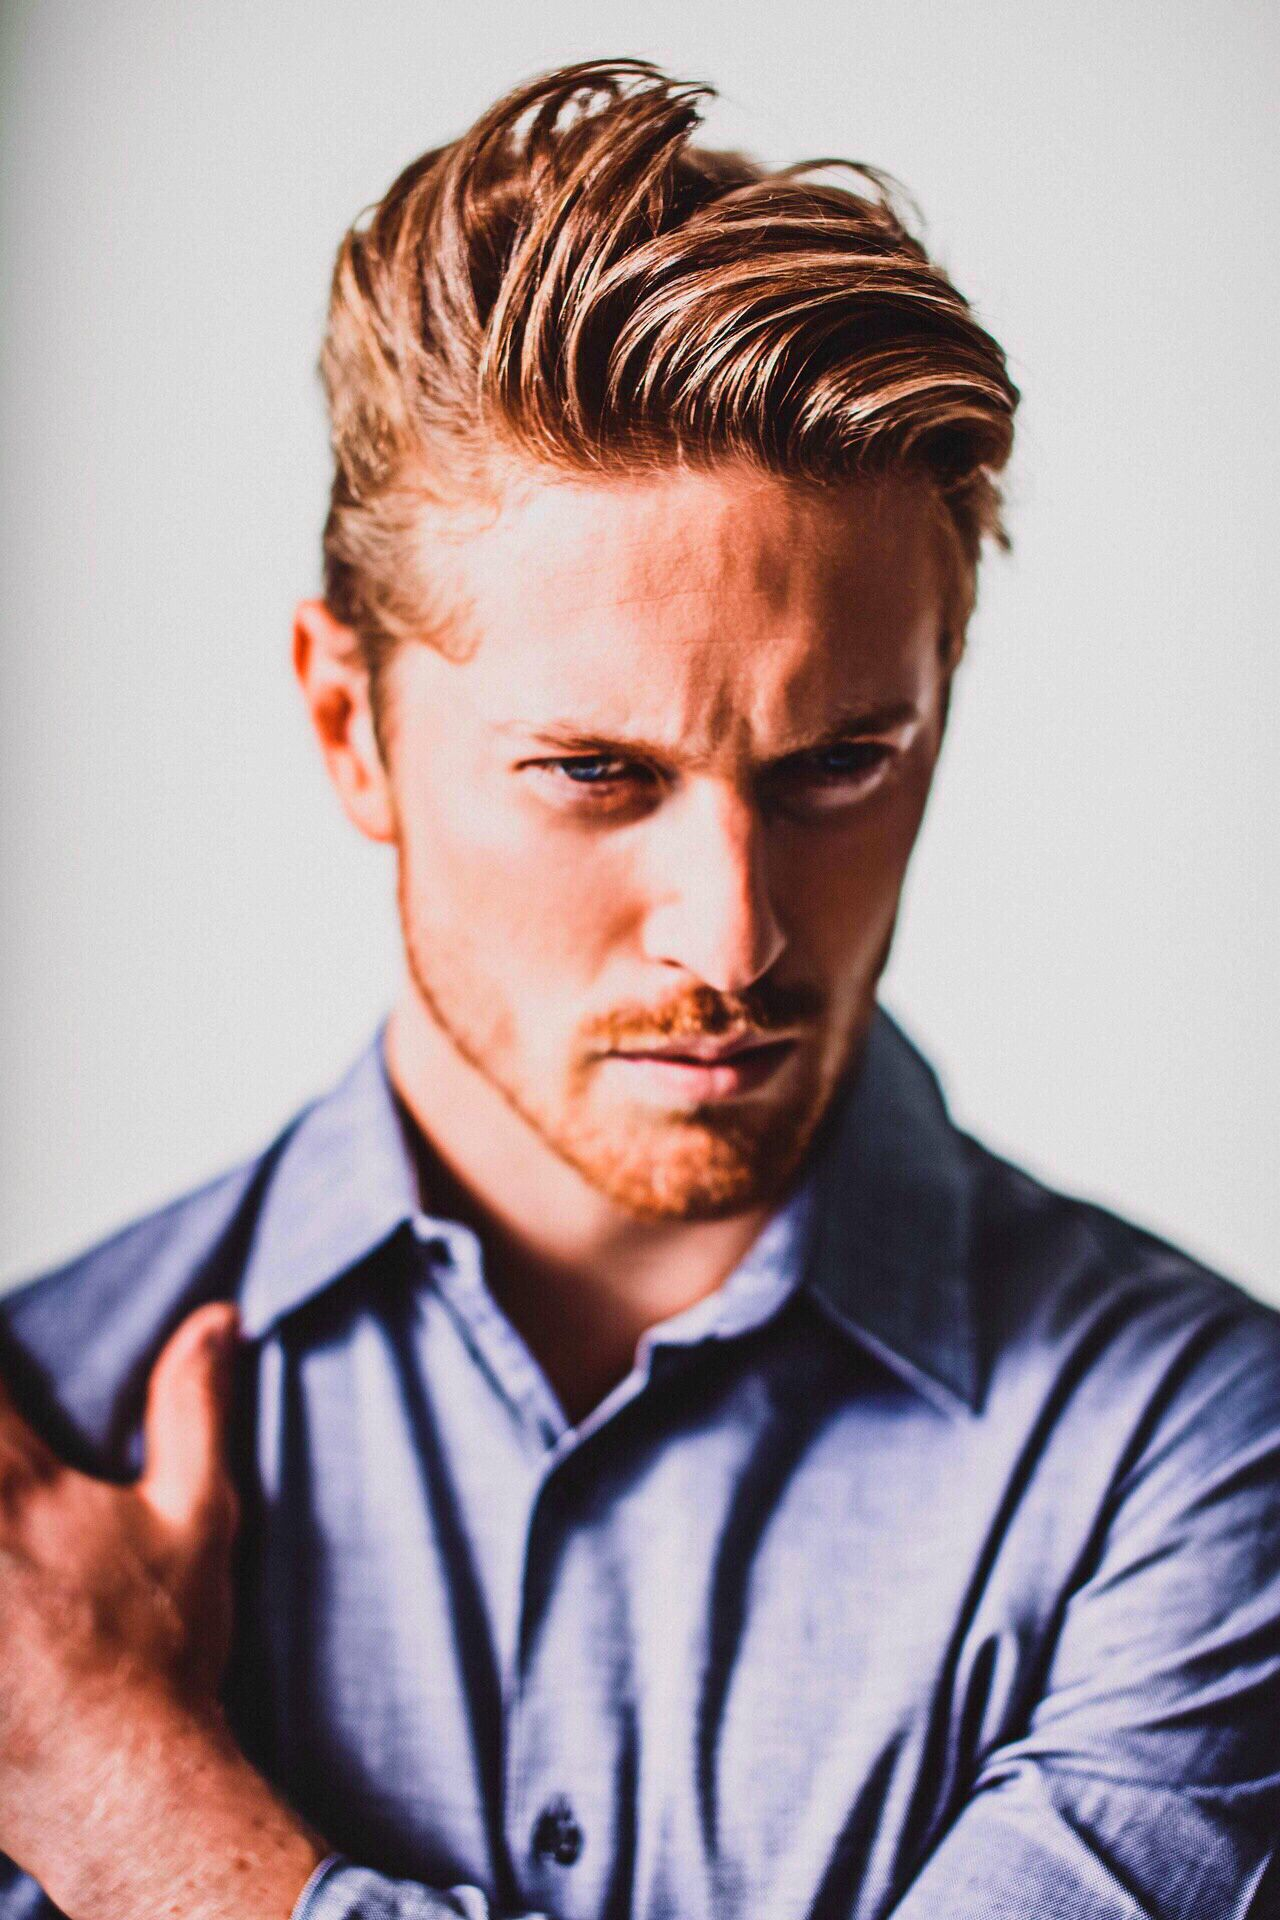 Loosely Swept Back Gents Barber Stuff Pinterest Style - Swept hairstyle men